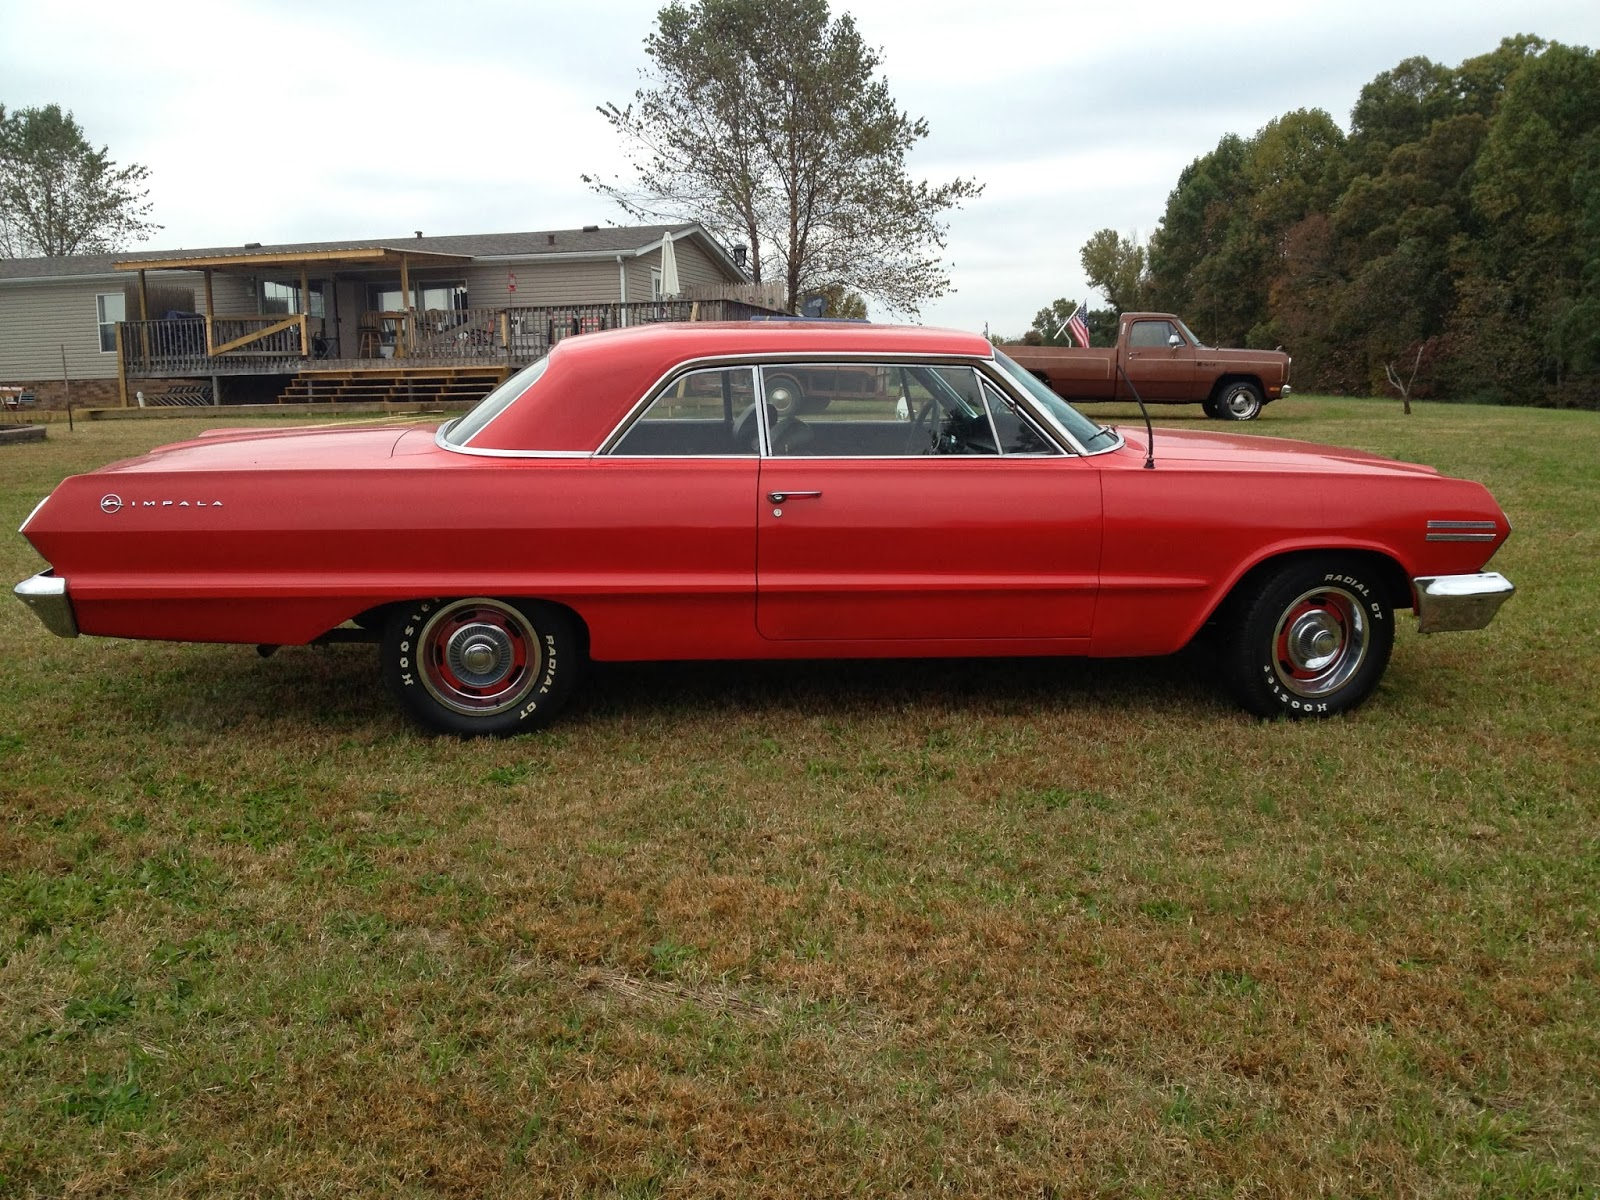 1963 chevrolet impala classic cars for sale. Black Bedroom Furniture Sets. Home Design Ideas